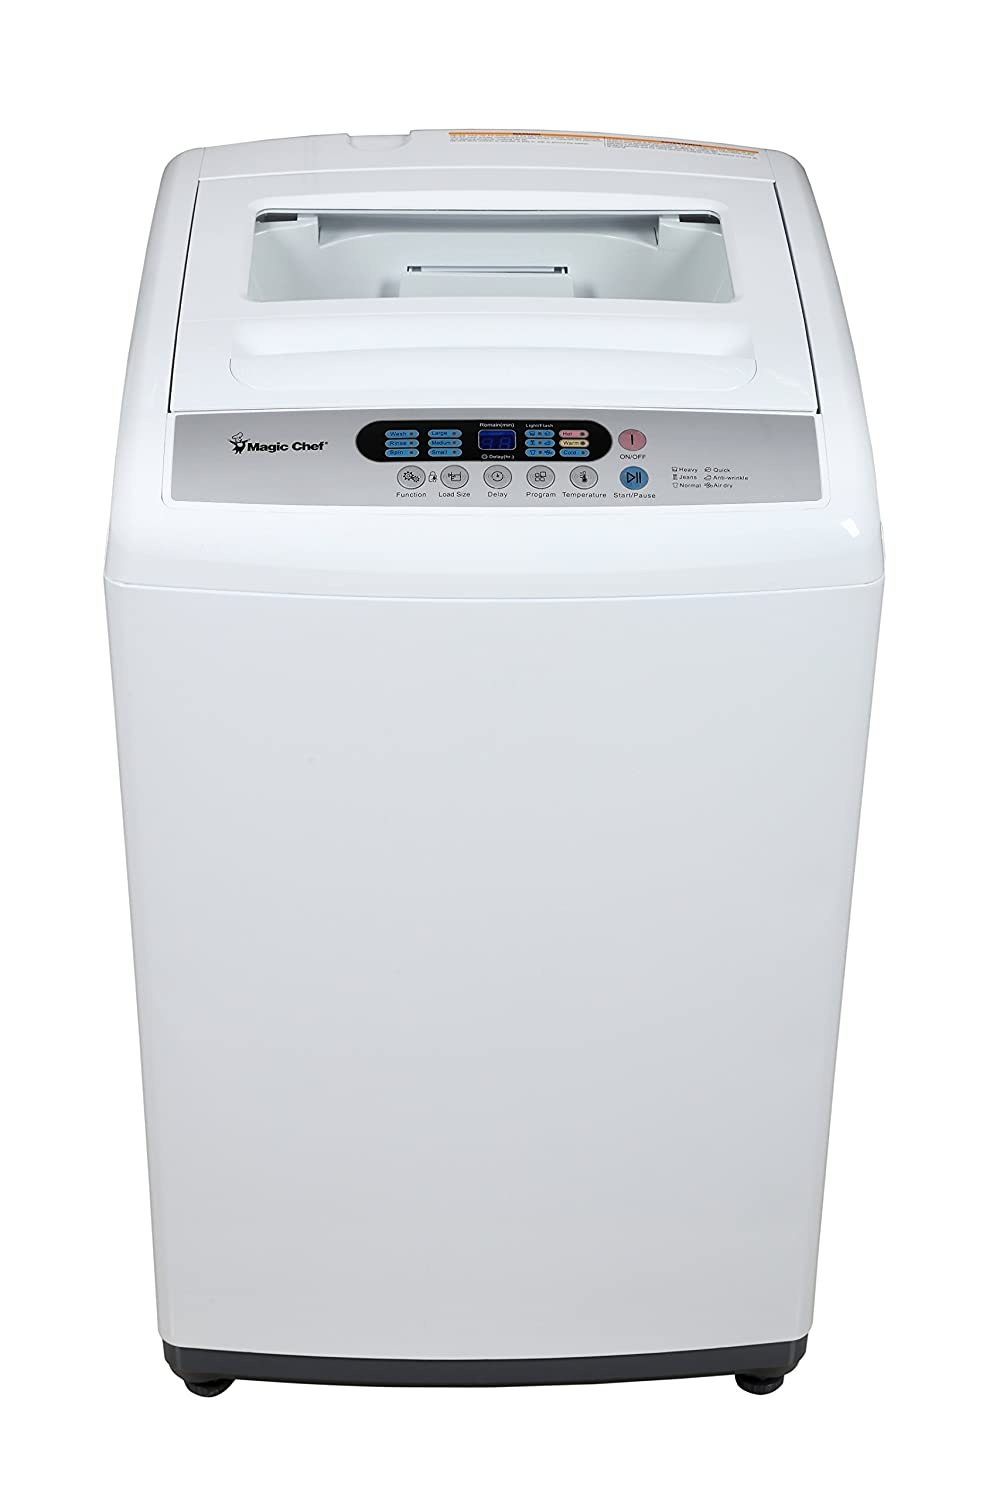 ft Topload Compact Washer White Magic Chef MCPMCSTCW16W3 MCSTCW16W3 1.6 cu